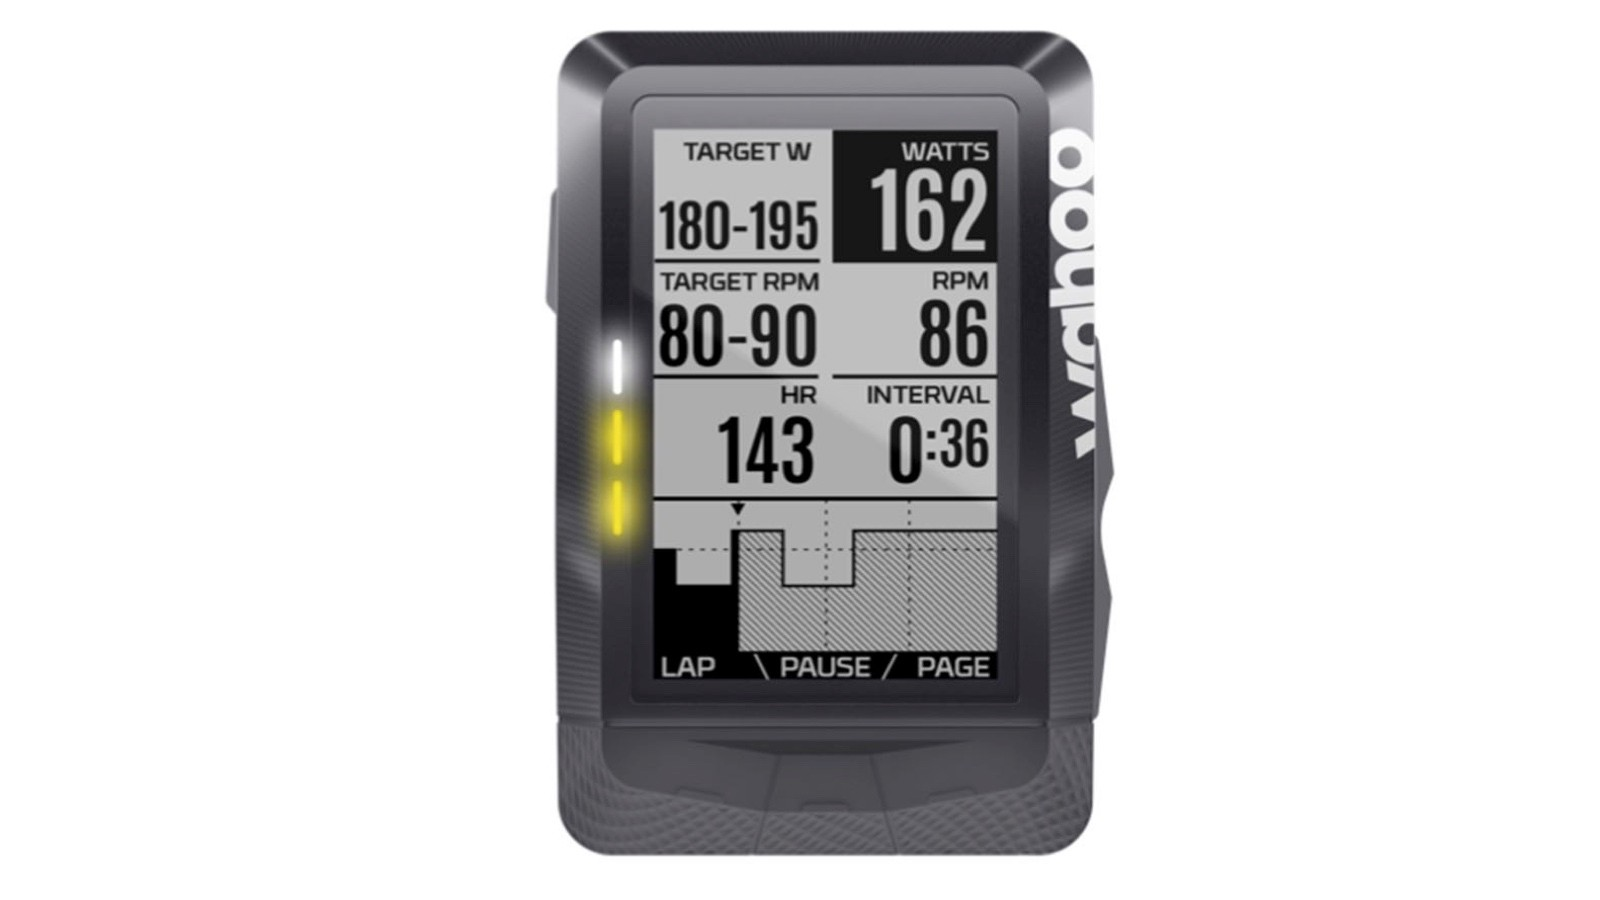 The Elemnt's LEDs indicate whether you are above, at or under target power, or another metric you have set